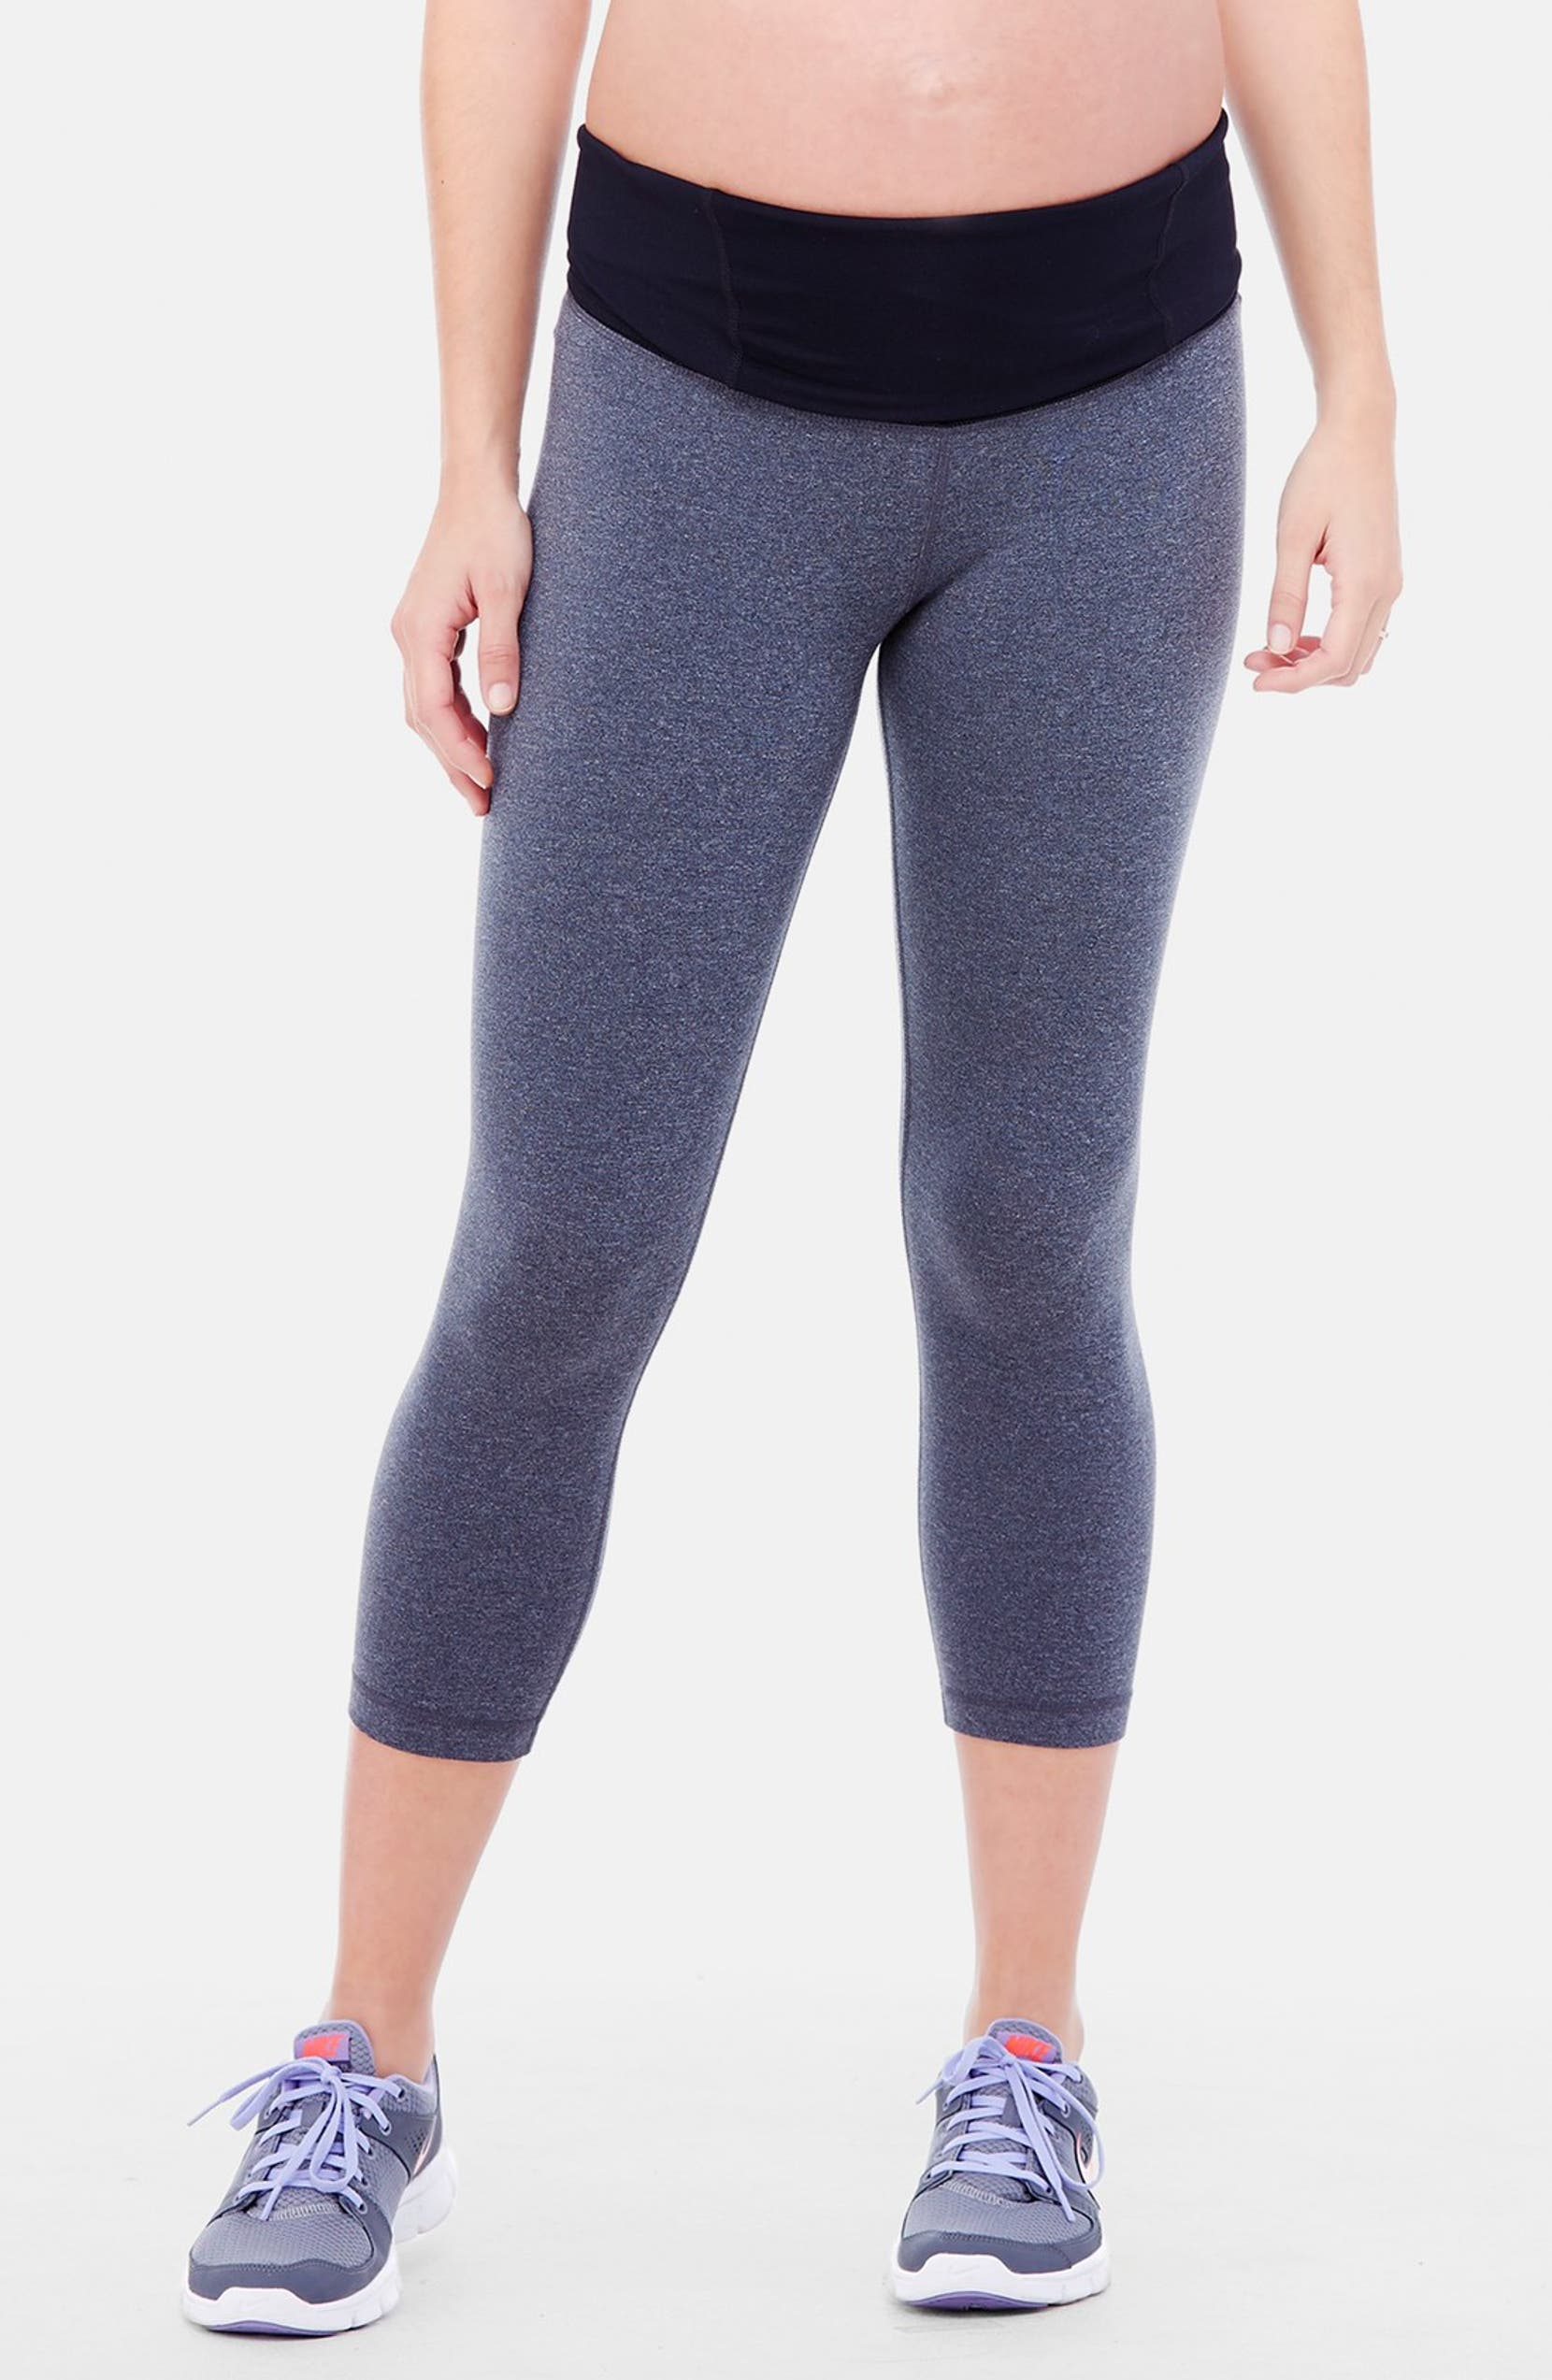 f2eade8c795e40 Ingrid & Isabel® Active Maternity Capri Pants with Crossover Panel |  Nordstrom